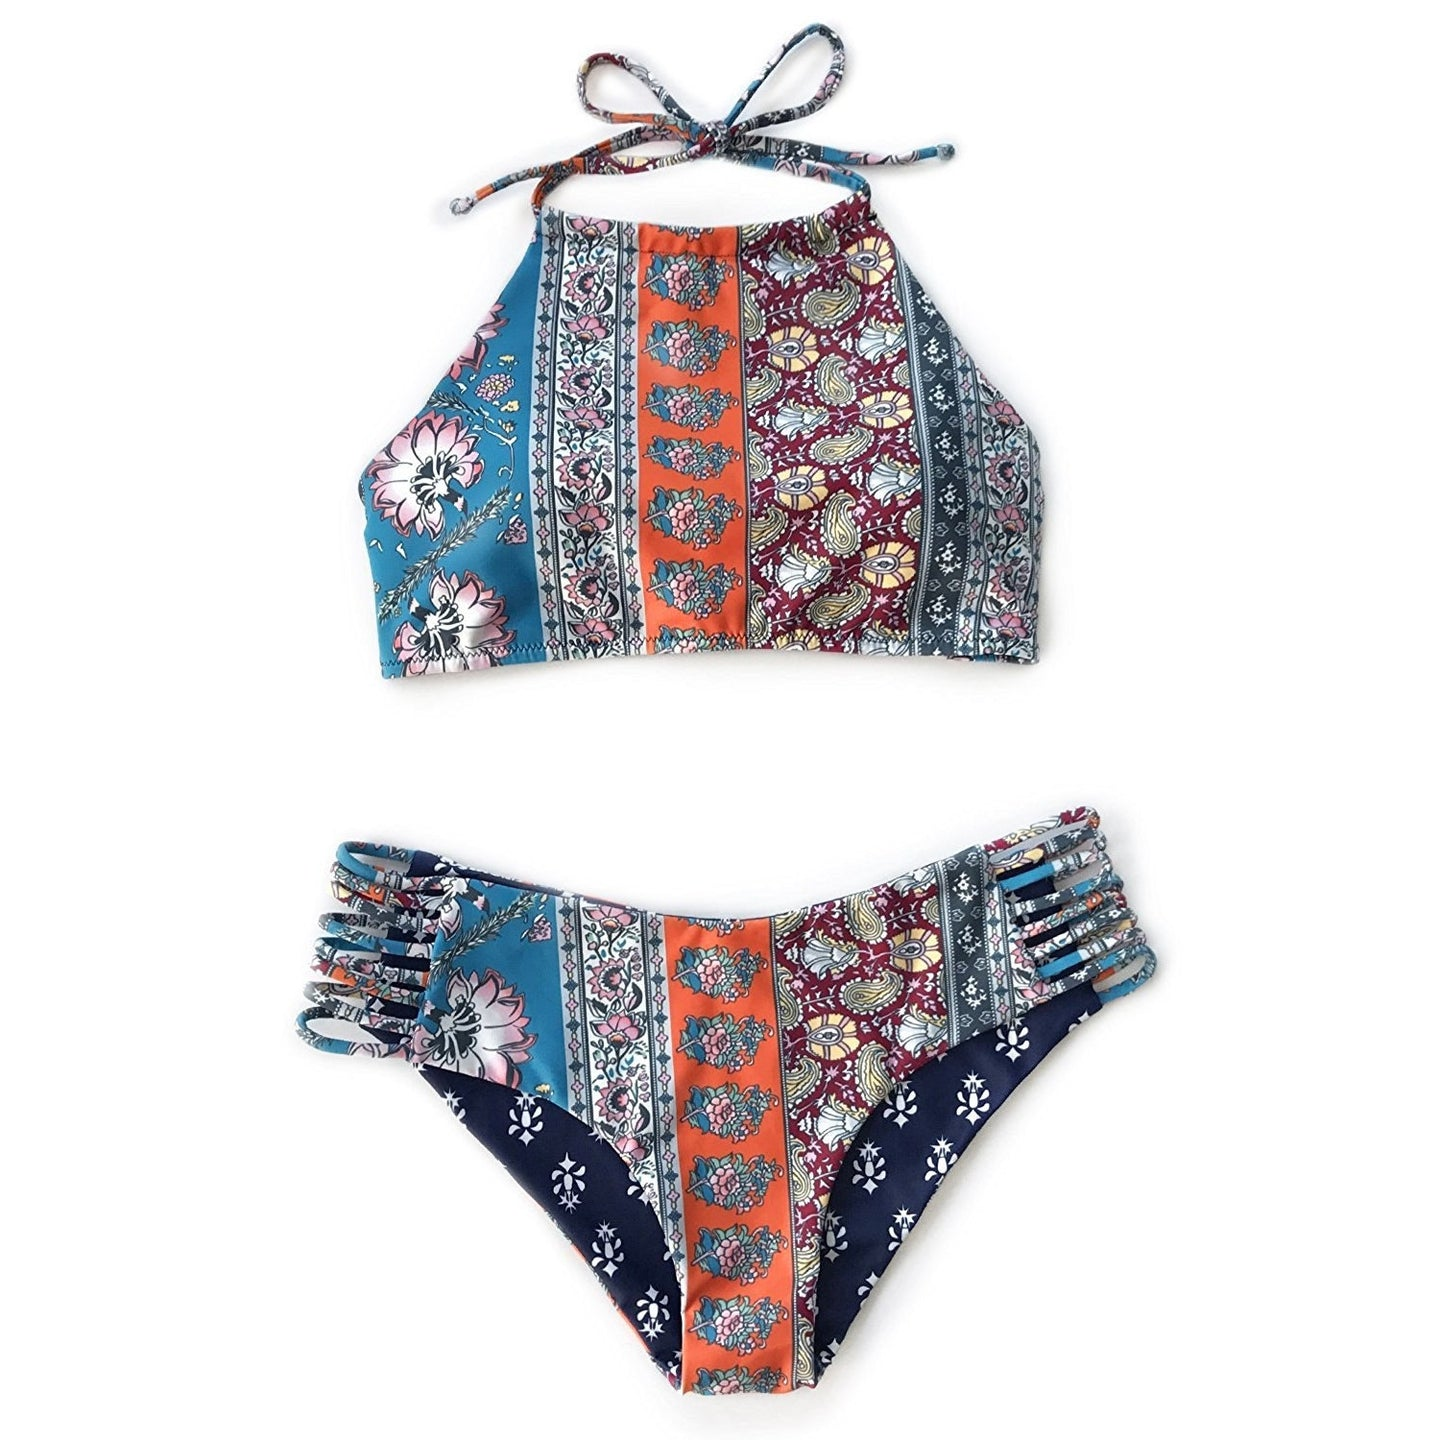 Patchwork Print Reversible Bikini Set (Halter Top model)